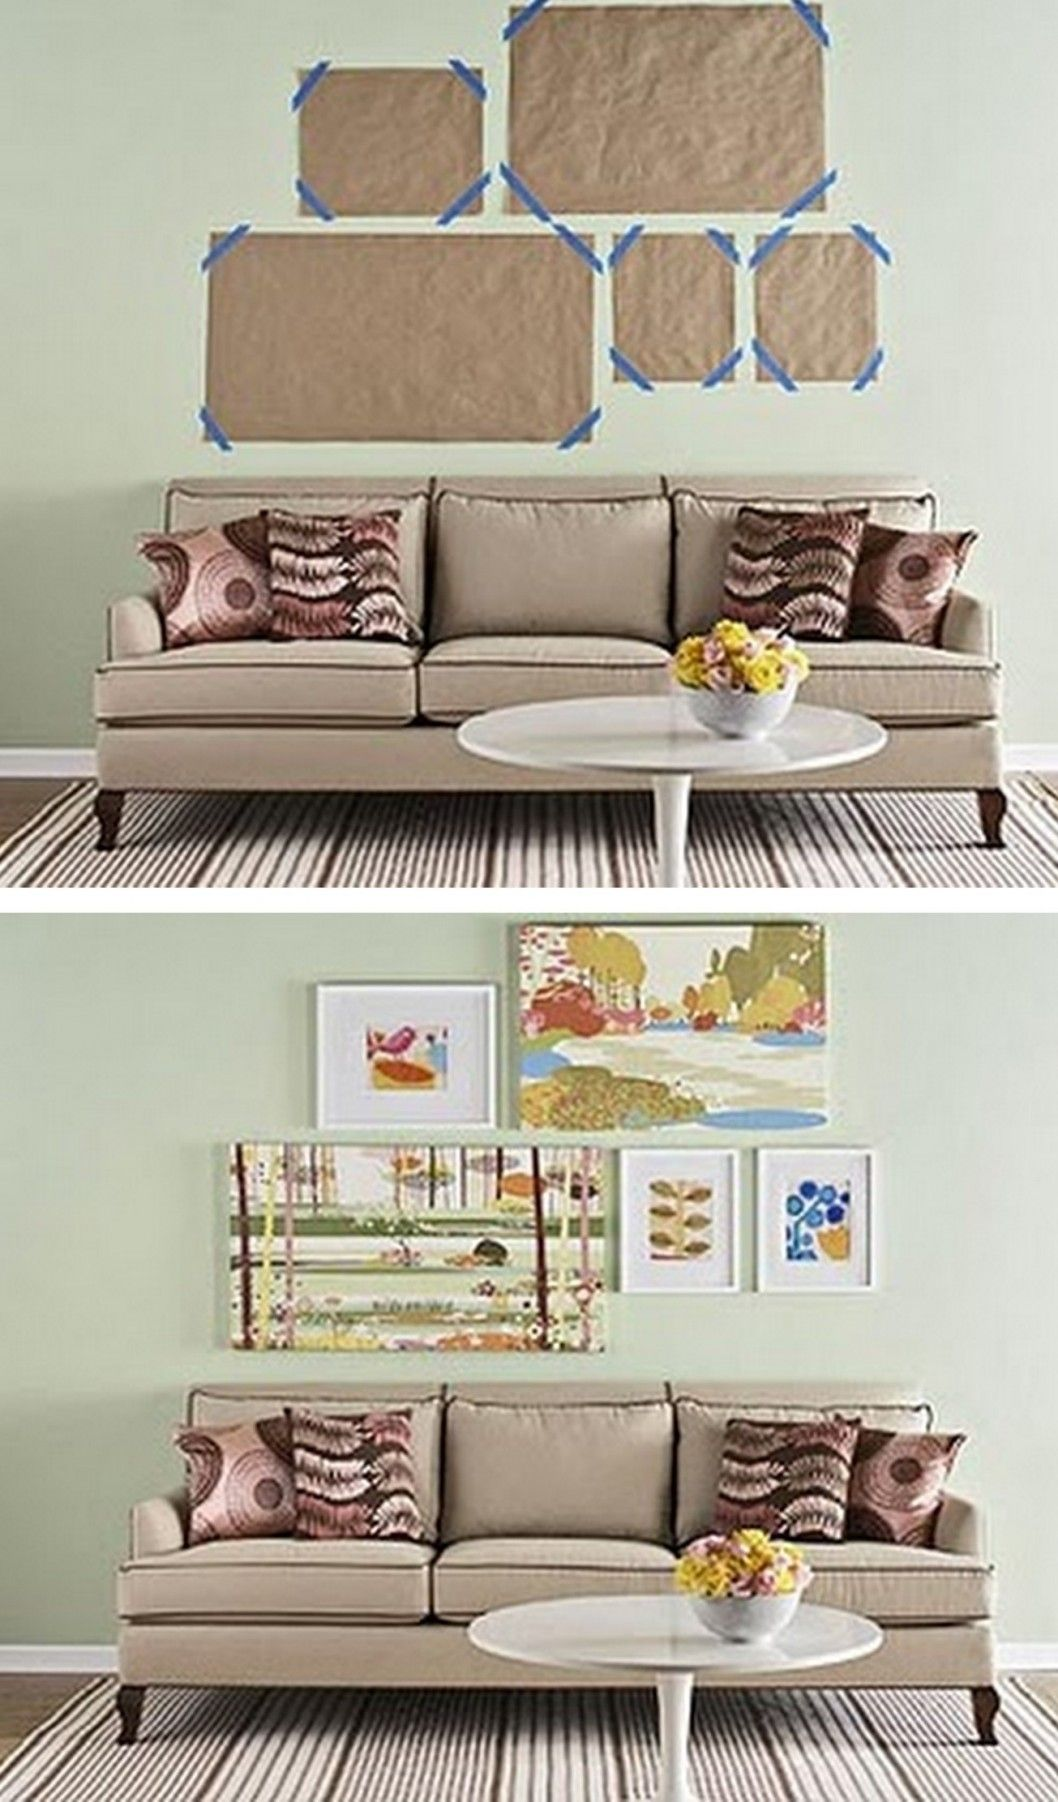 Ideas For Hanging Pictures On Wall Without Frames besf of ideas, photos on wall ideas frames ways to without ways to